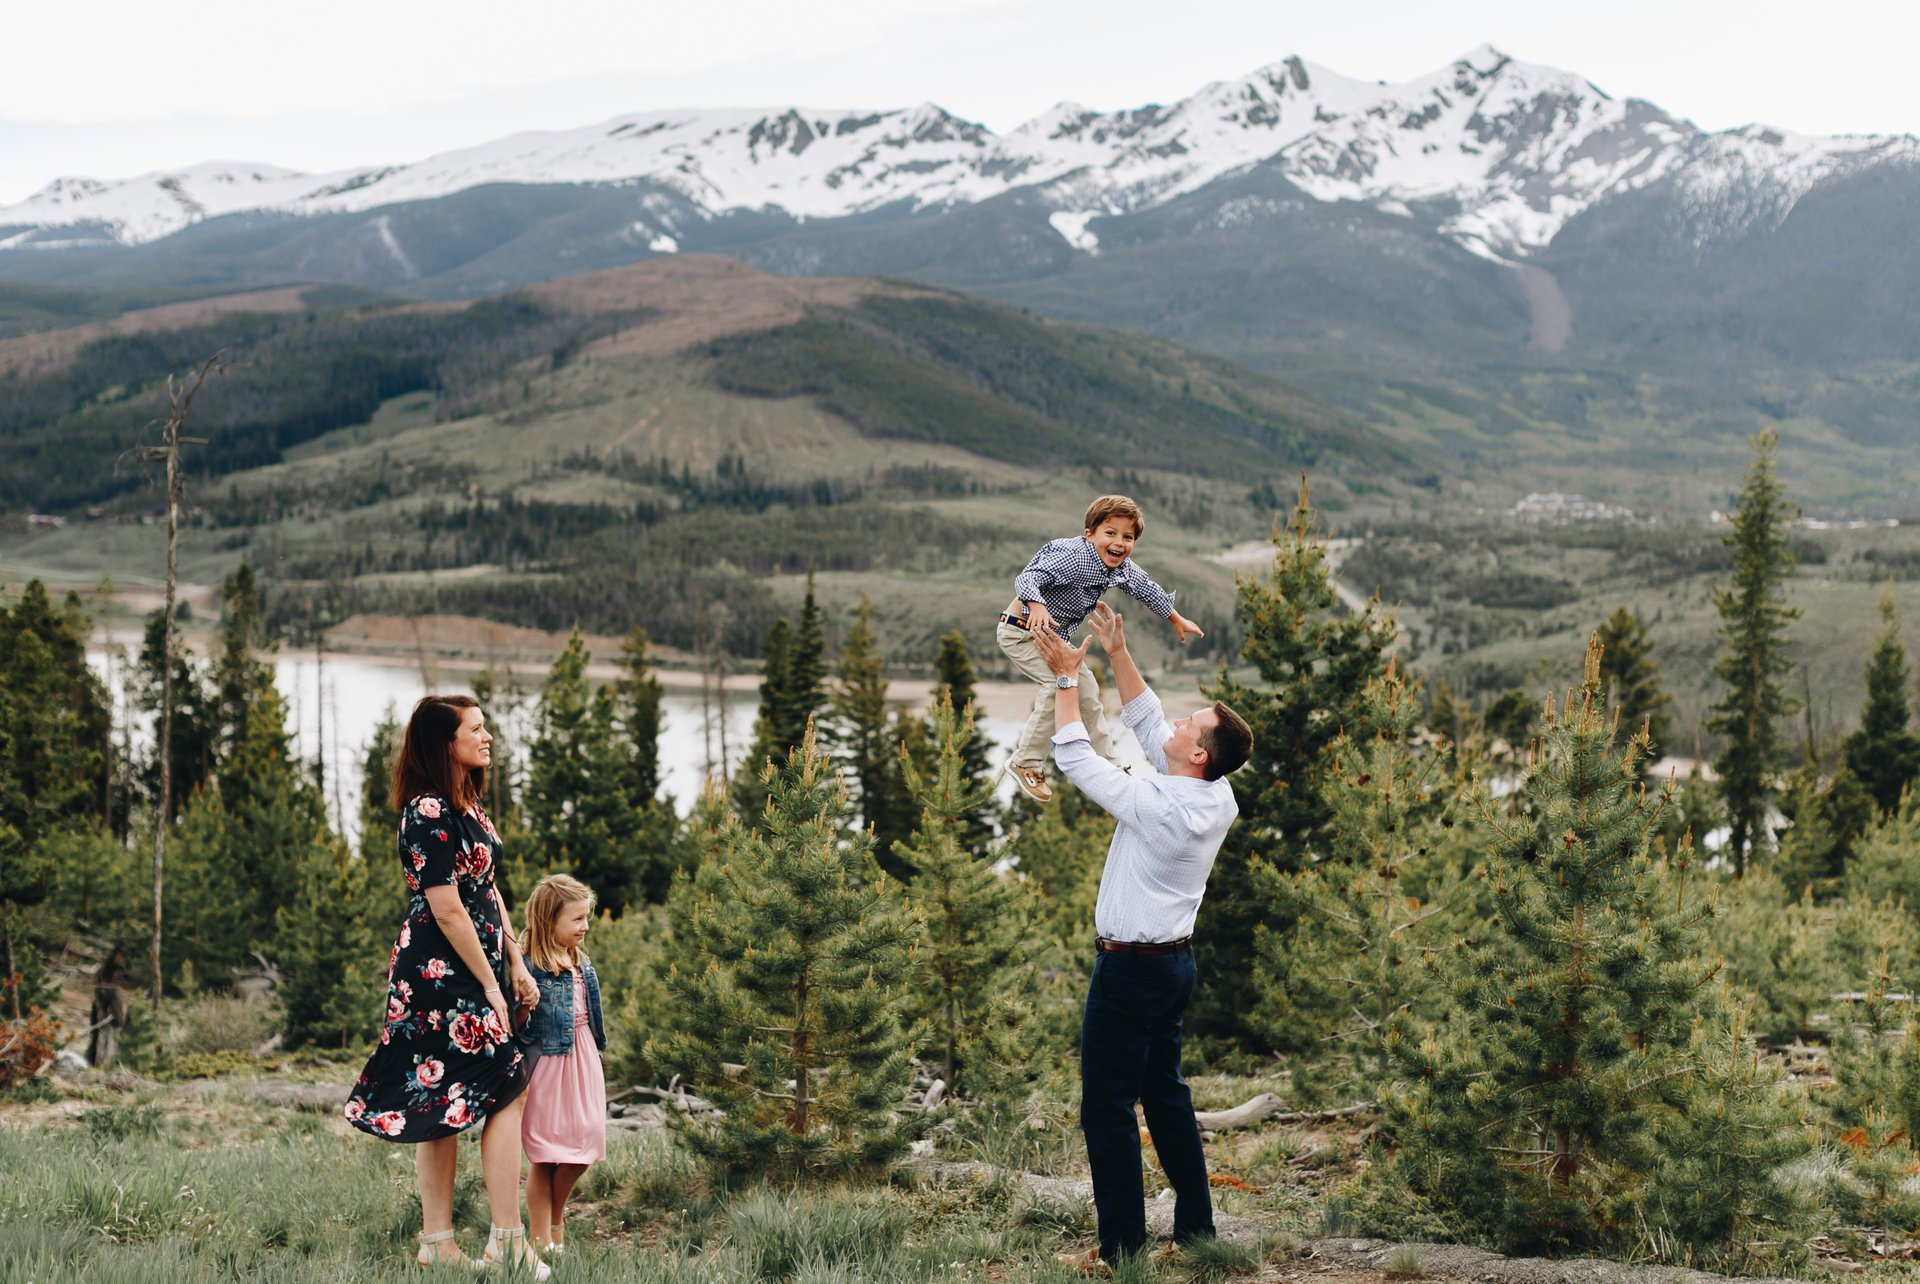 Breckenridge-United States-travel-story-Flytographer-7